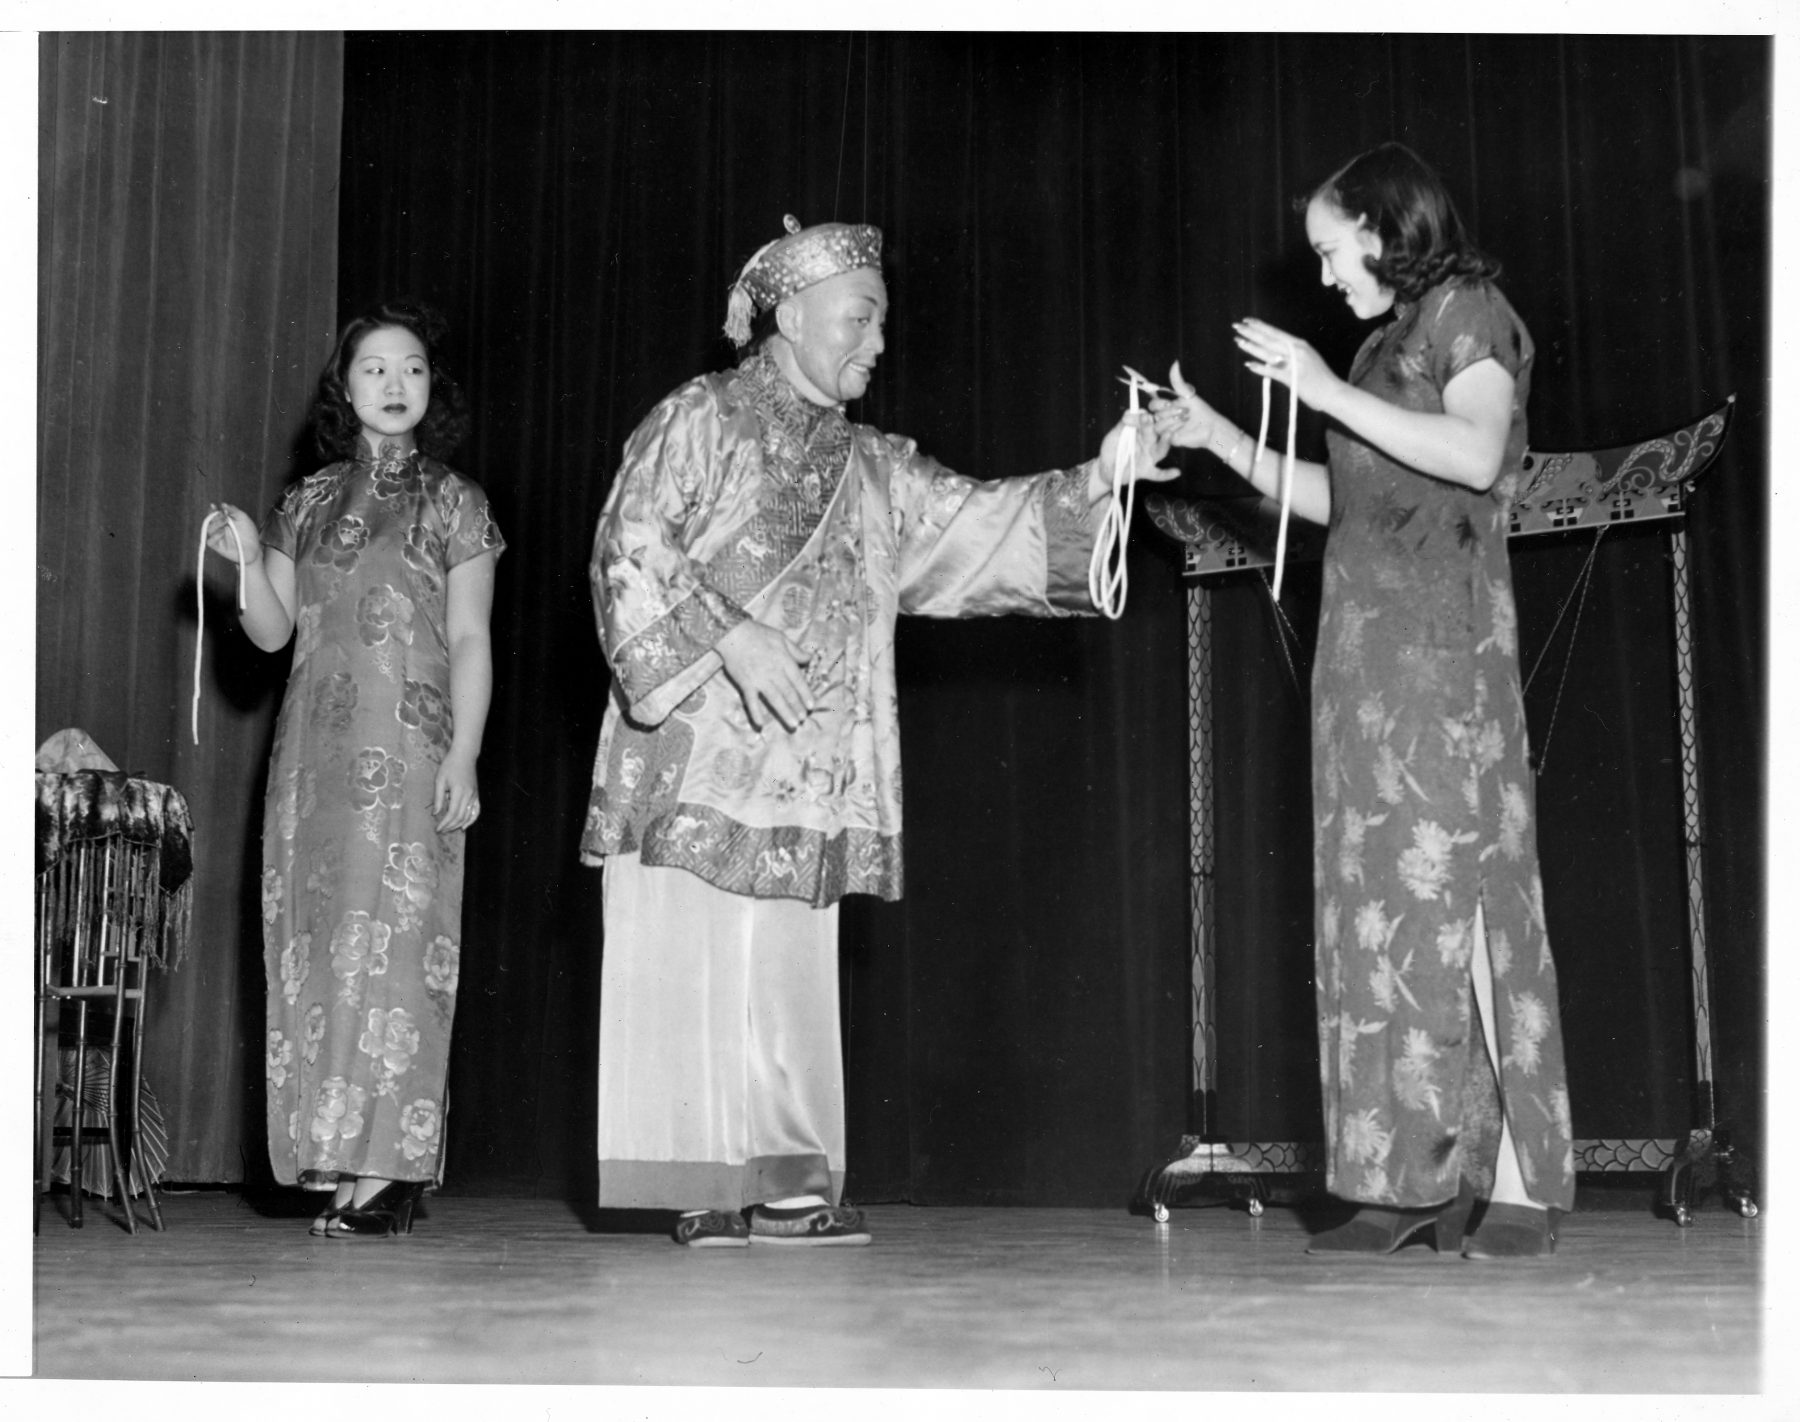 """08 October 2019 Posted. William Arenholz performing as """"Foo Ling Yu,"""" at the Barbizon Plaza Hotel, Courtesy of Elizabeth Ng, Museum of Chinese in America (MOCA) Collection. William Arenholz在Barbizon Plaza扮演""""Foo Ling Yu"""",Elizabeth Ng捐赠,美国华人博物馆(MOCA)馆藏"""